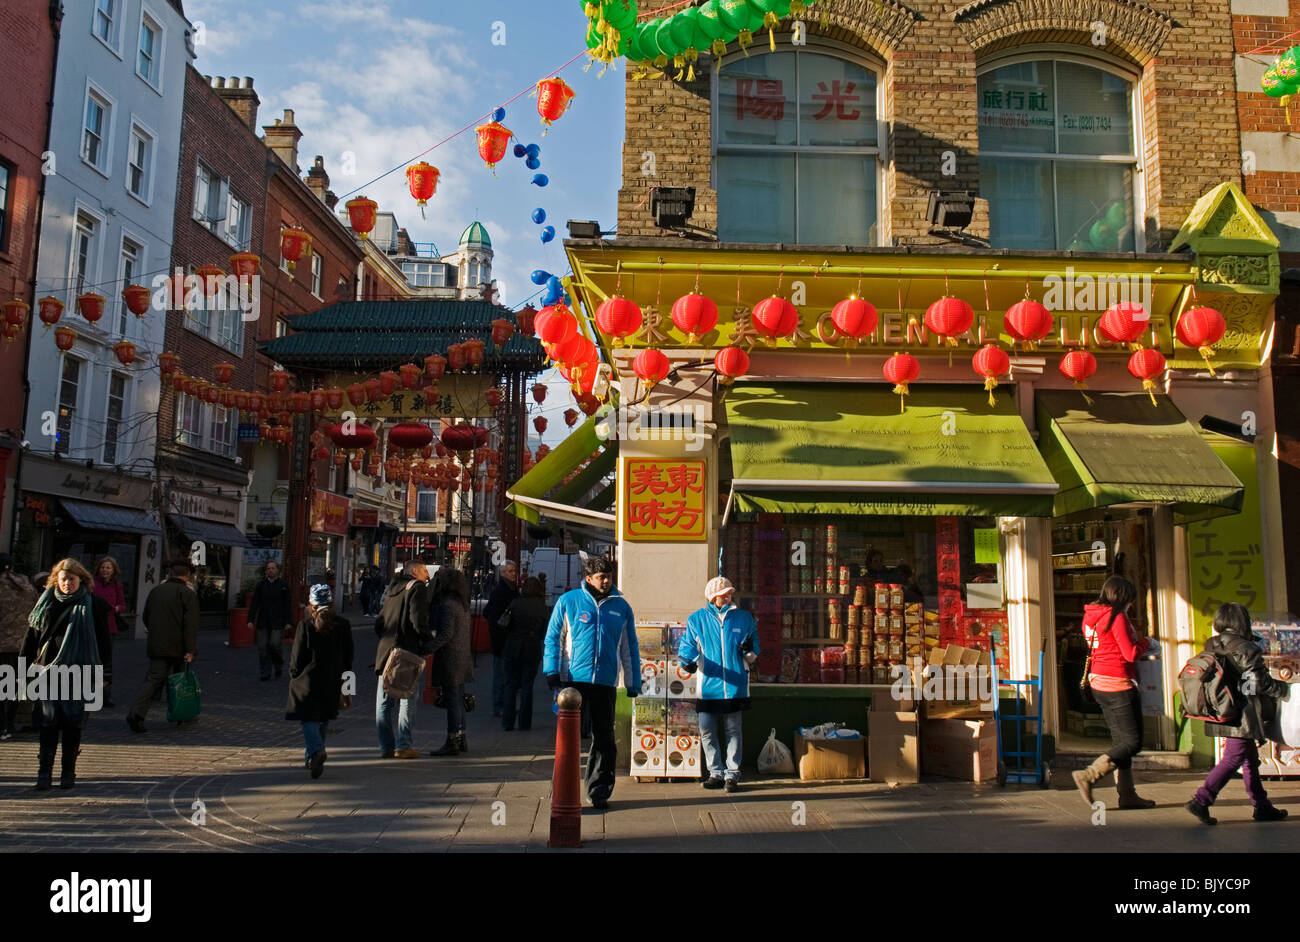 Lantern decoration for Chinese New Year 2010 in China Town, London England UK - Stock Image